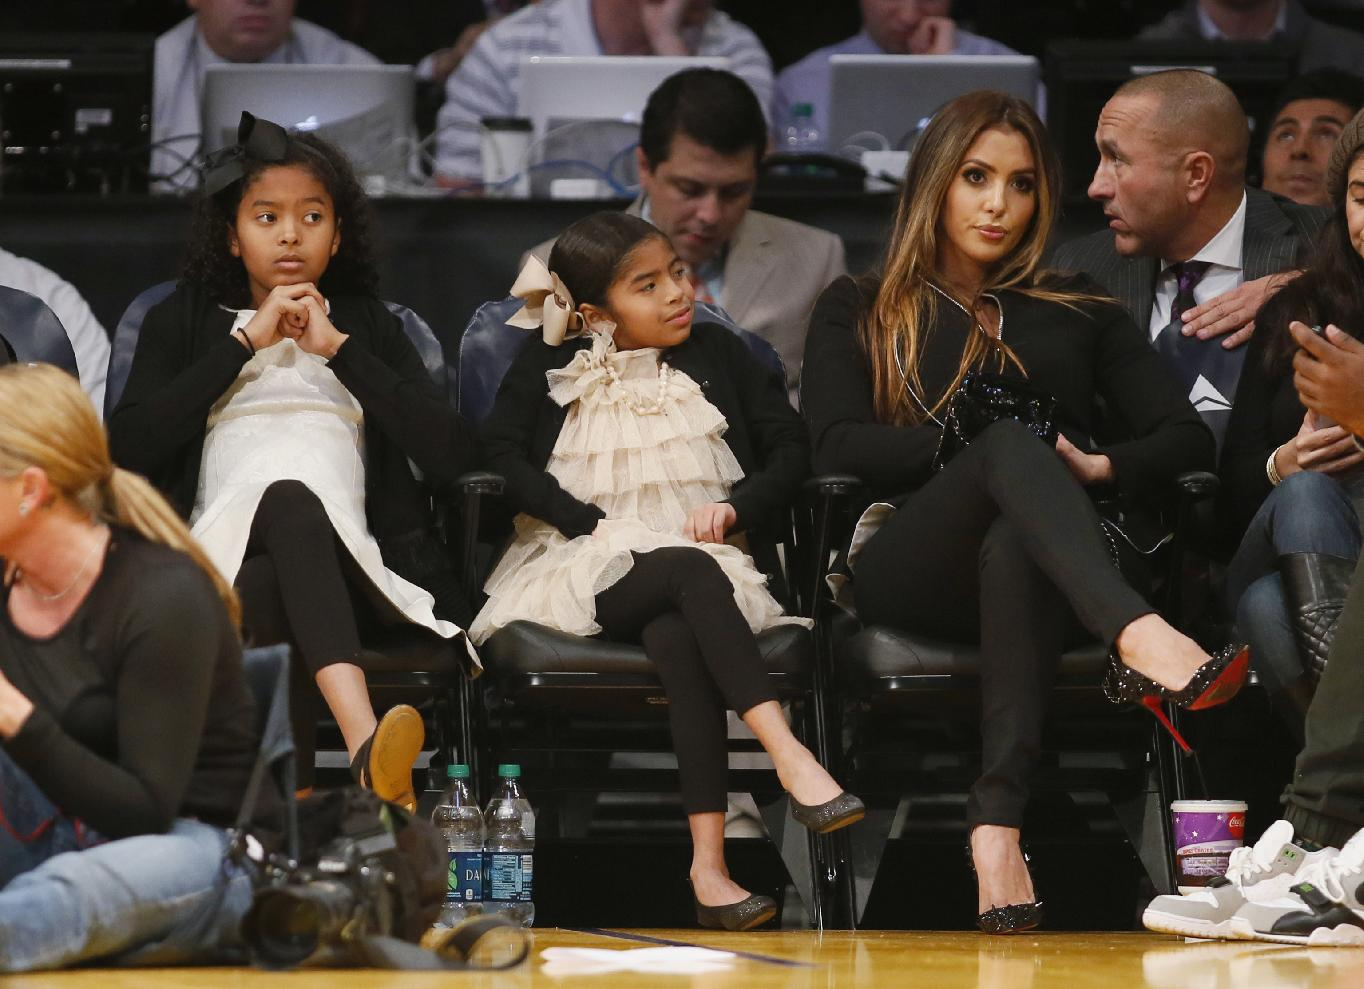 Vanessa Bryant, right, wife of Los Angeles Lakers' Kobe Bryant, sits with their daughters Natalia Diamante Bryant, left, and Gianna Maria-Onore Bryant, center, as the Lakers play the Toronto Raptors in an NBA basketball game in Los Angeles, Sunday, Dec. 8, 2013